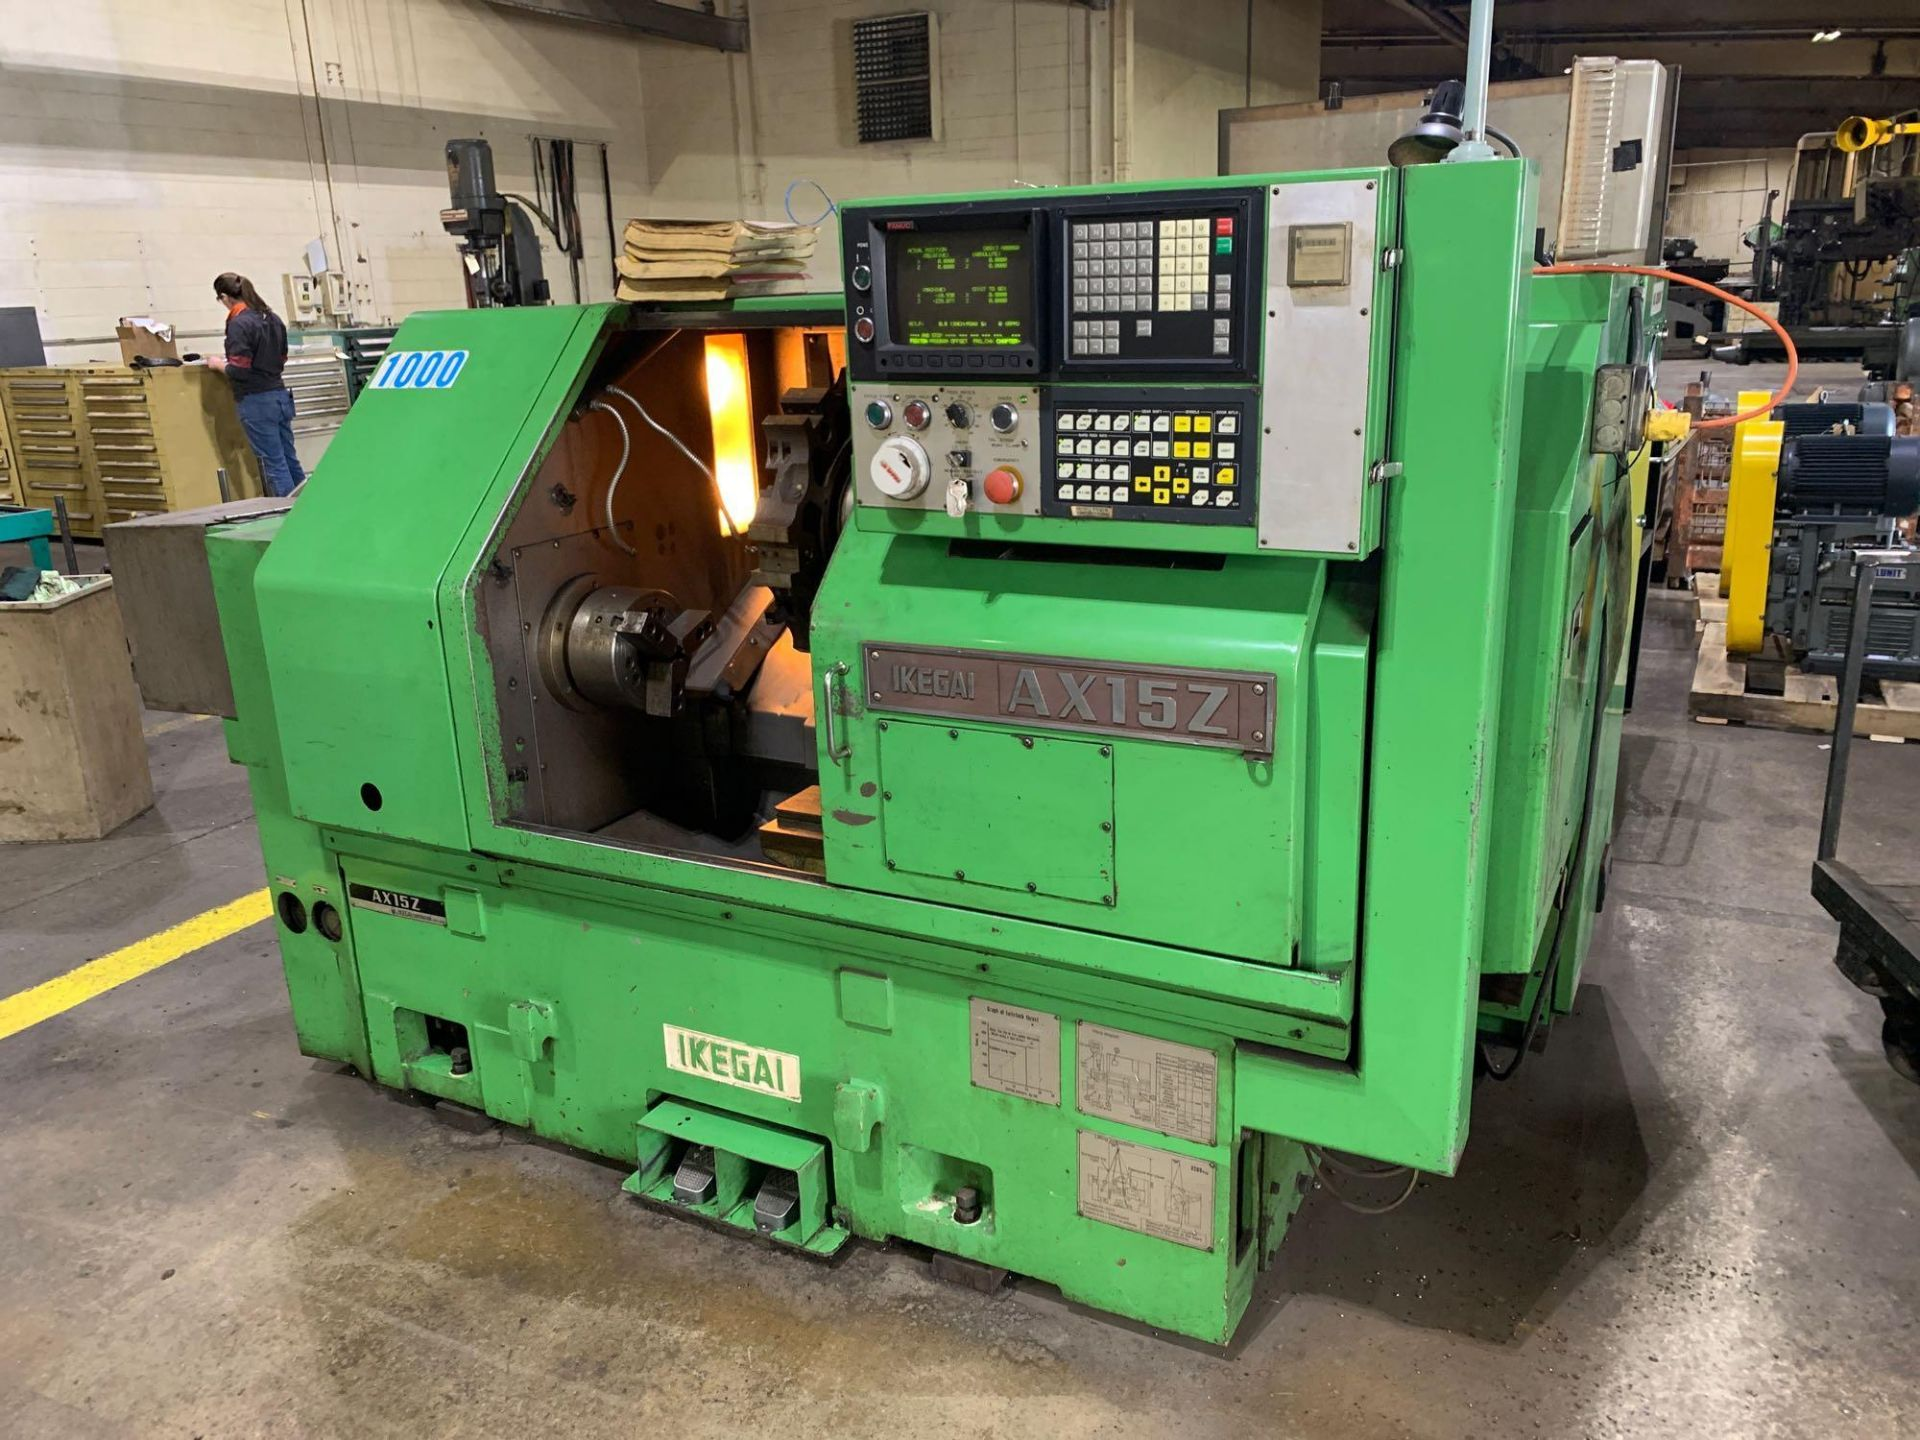 IKEGAI AX-15Z CNC Slant Bed Turning Center Serial Number: 50130V 2-Axis Machine Fanuc 10T Control 12 - Image 3 of 18